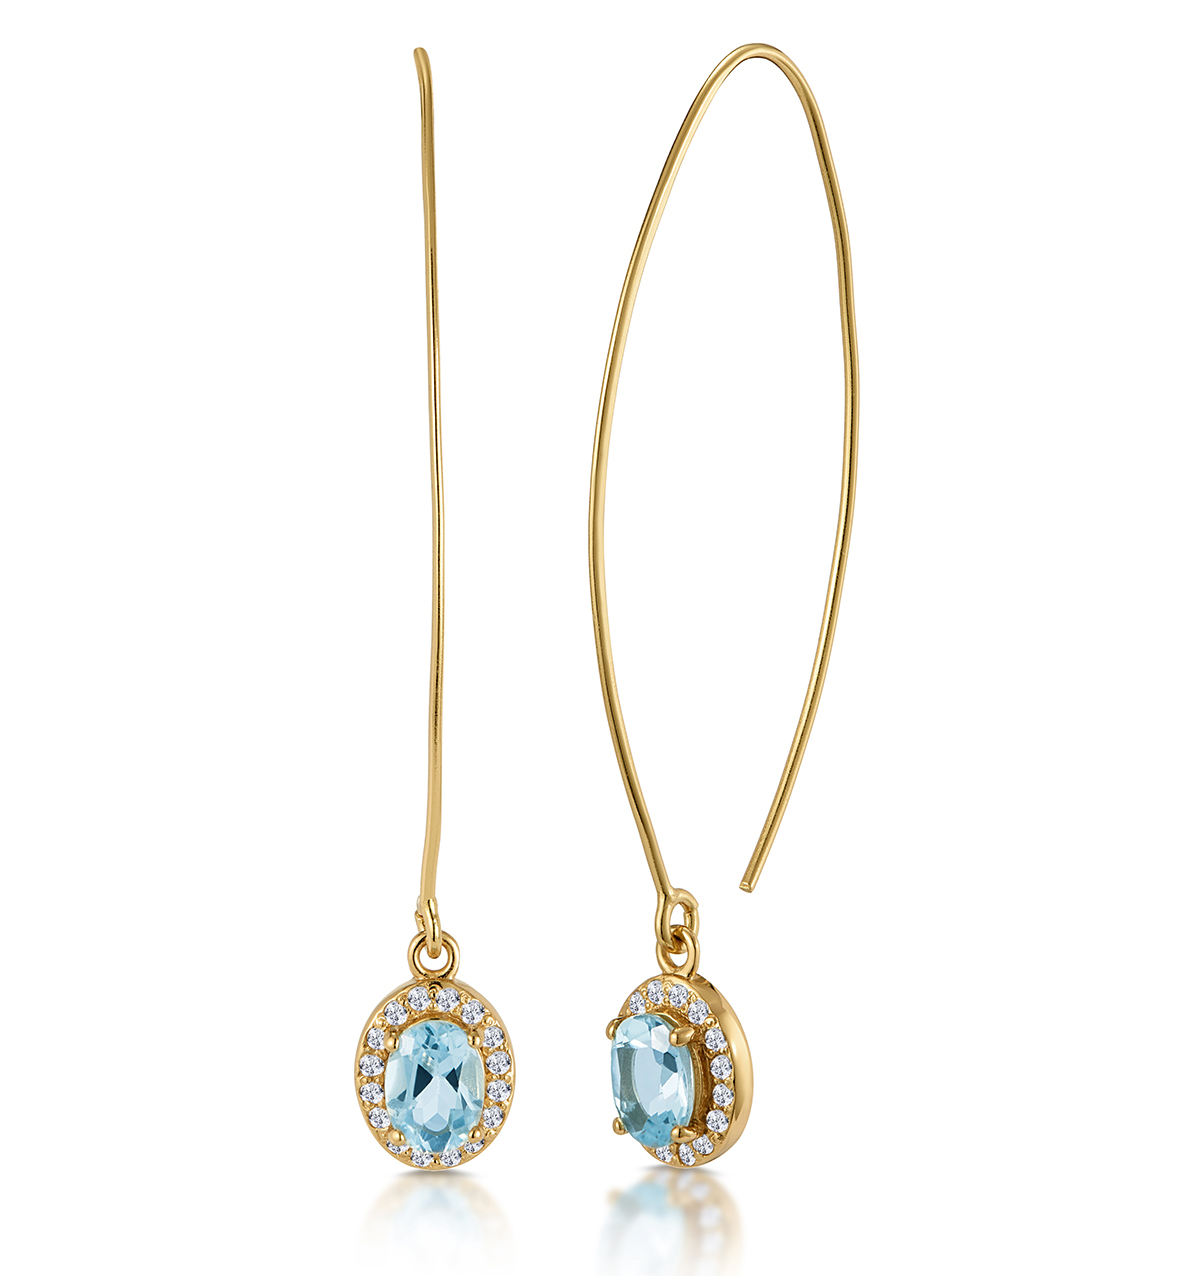 BLUE TOPAZ AND WHITE TOPAZ GOLD VERMEIL EARRINGS - TESORO COLLECTION